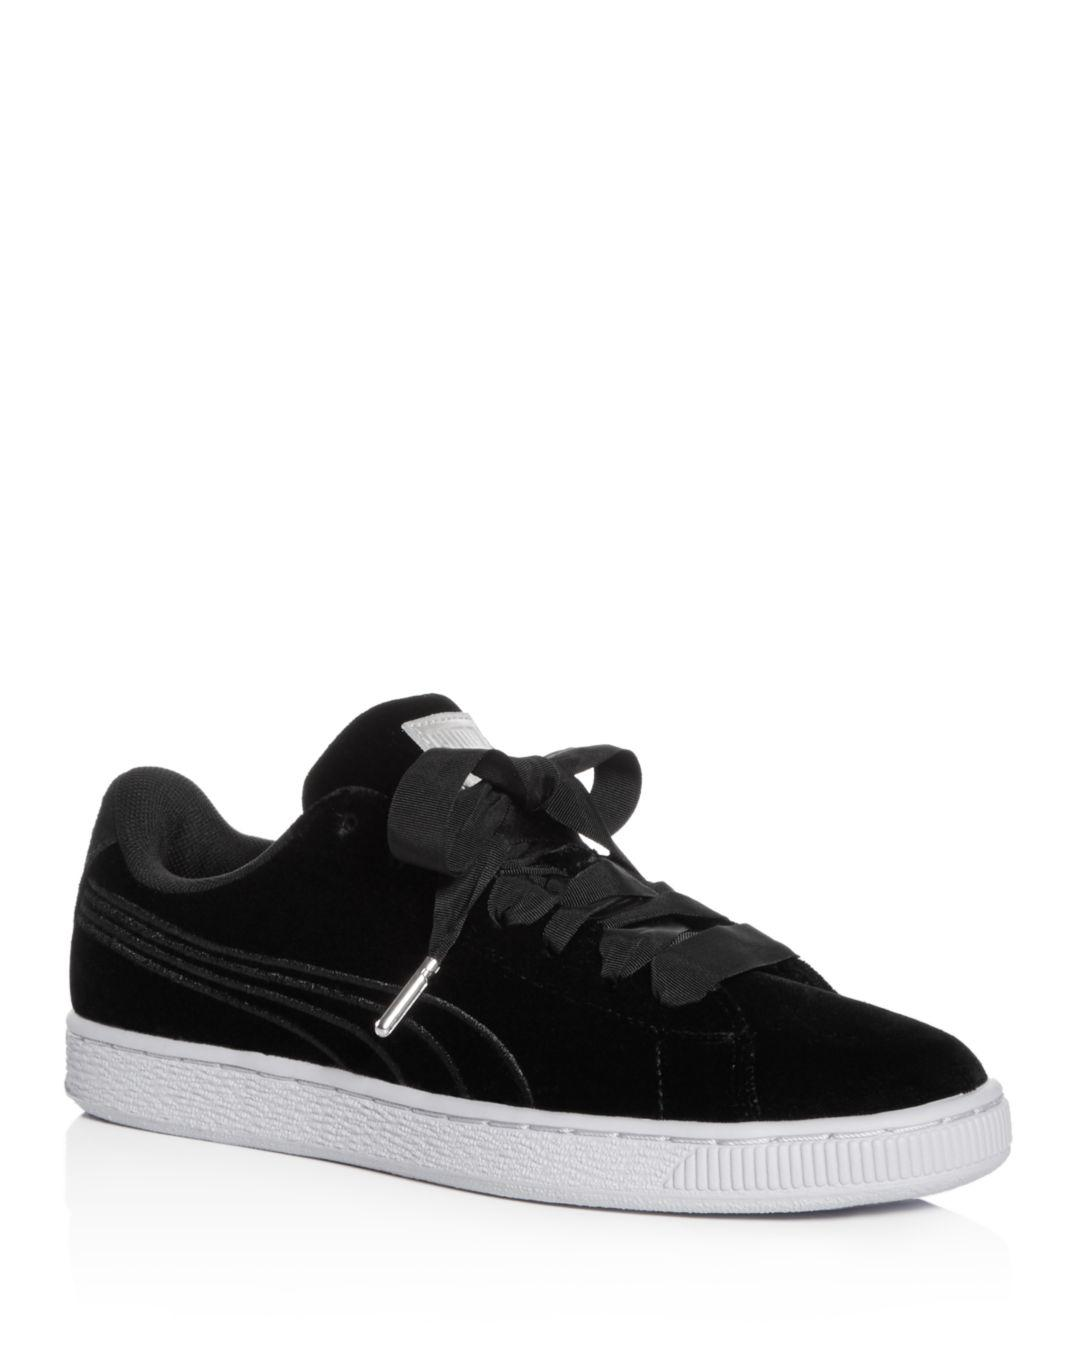 8223844e3733fd Gallery. Previously sold at  Bloomingdale s · Women s Puma Classic Women s  Puma Classic Sneaker